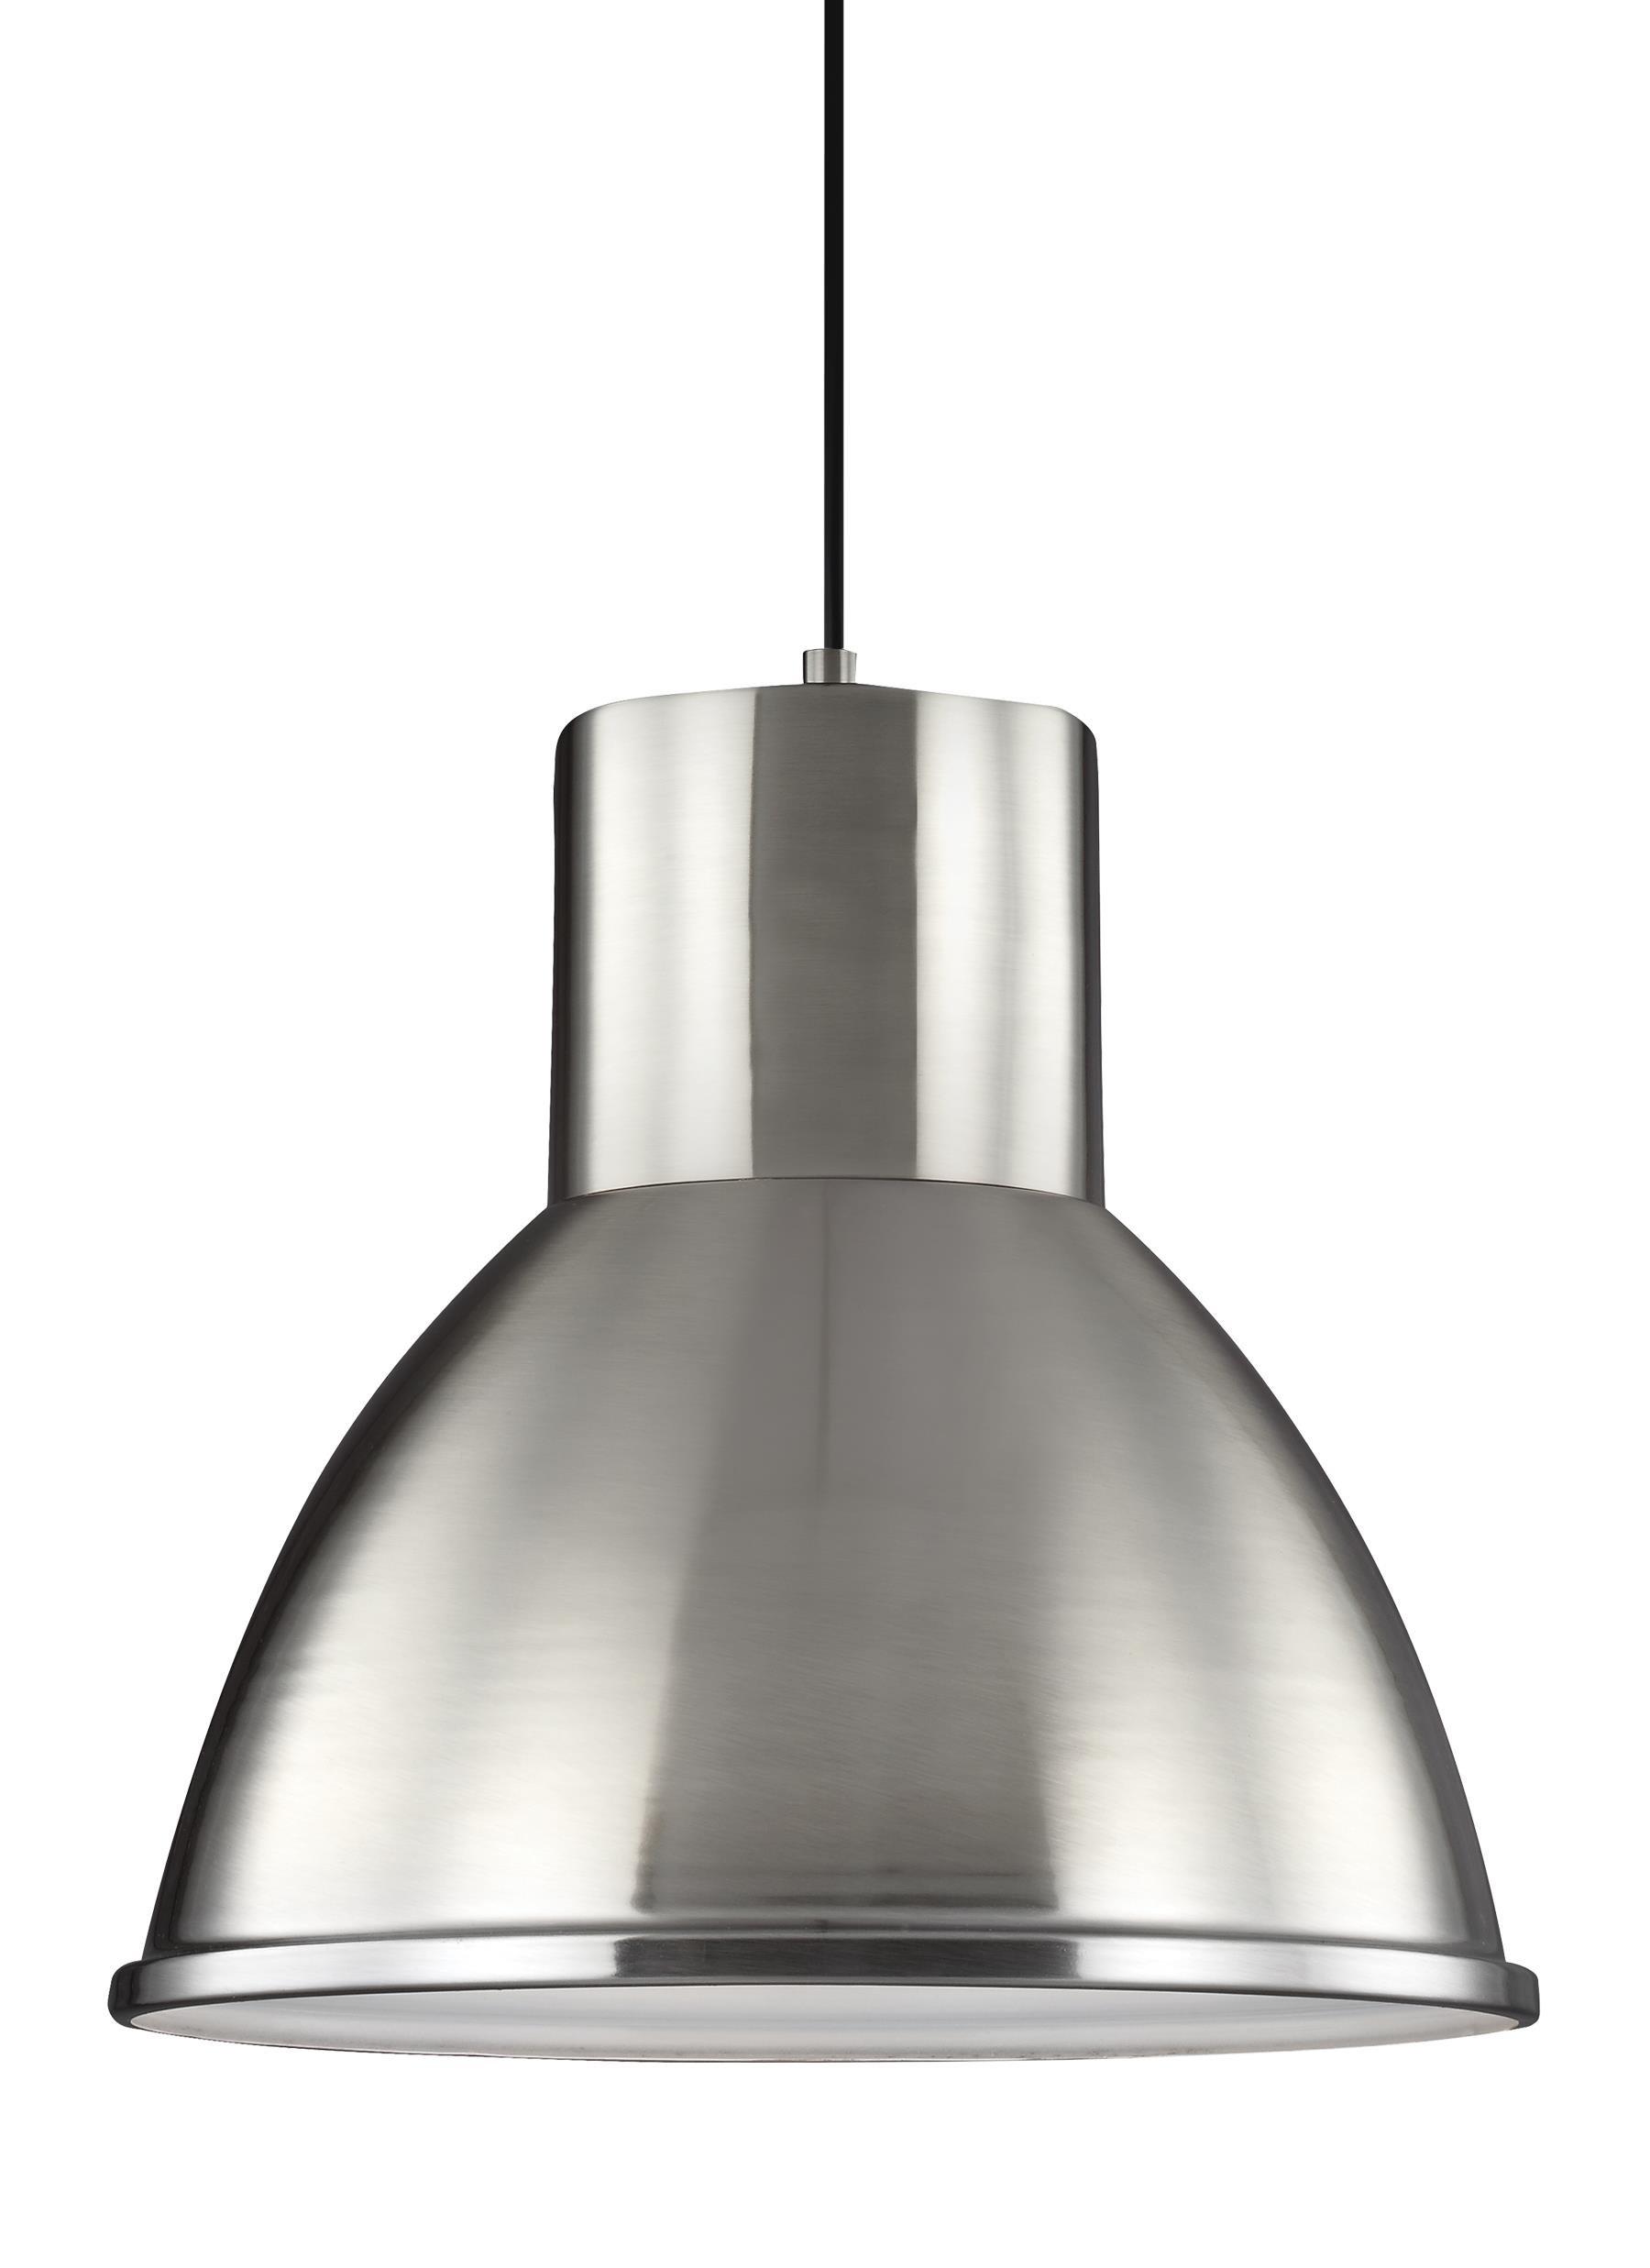 Sea Gull Lighting 6517491S-962 Division Street LED Pendant with Steel Shade, Brushed Nickel Finish